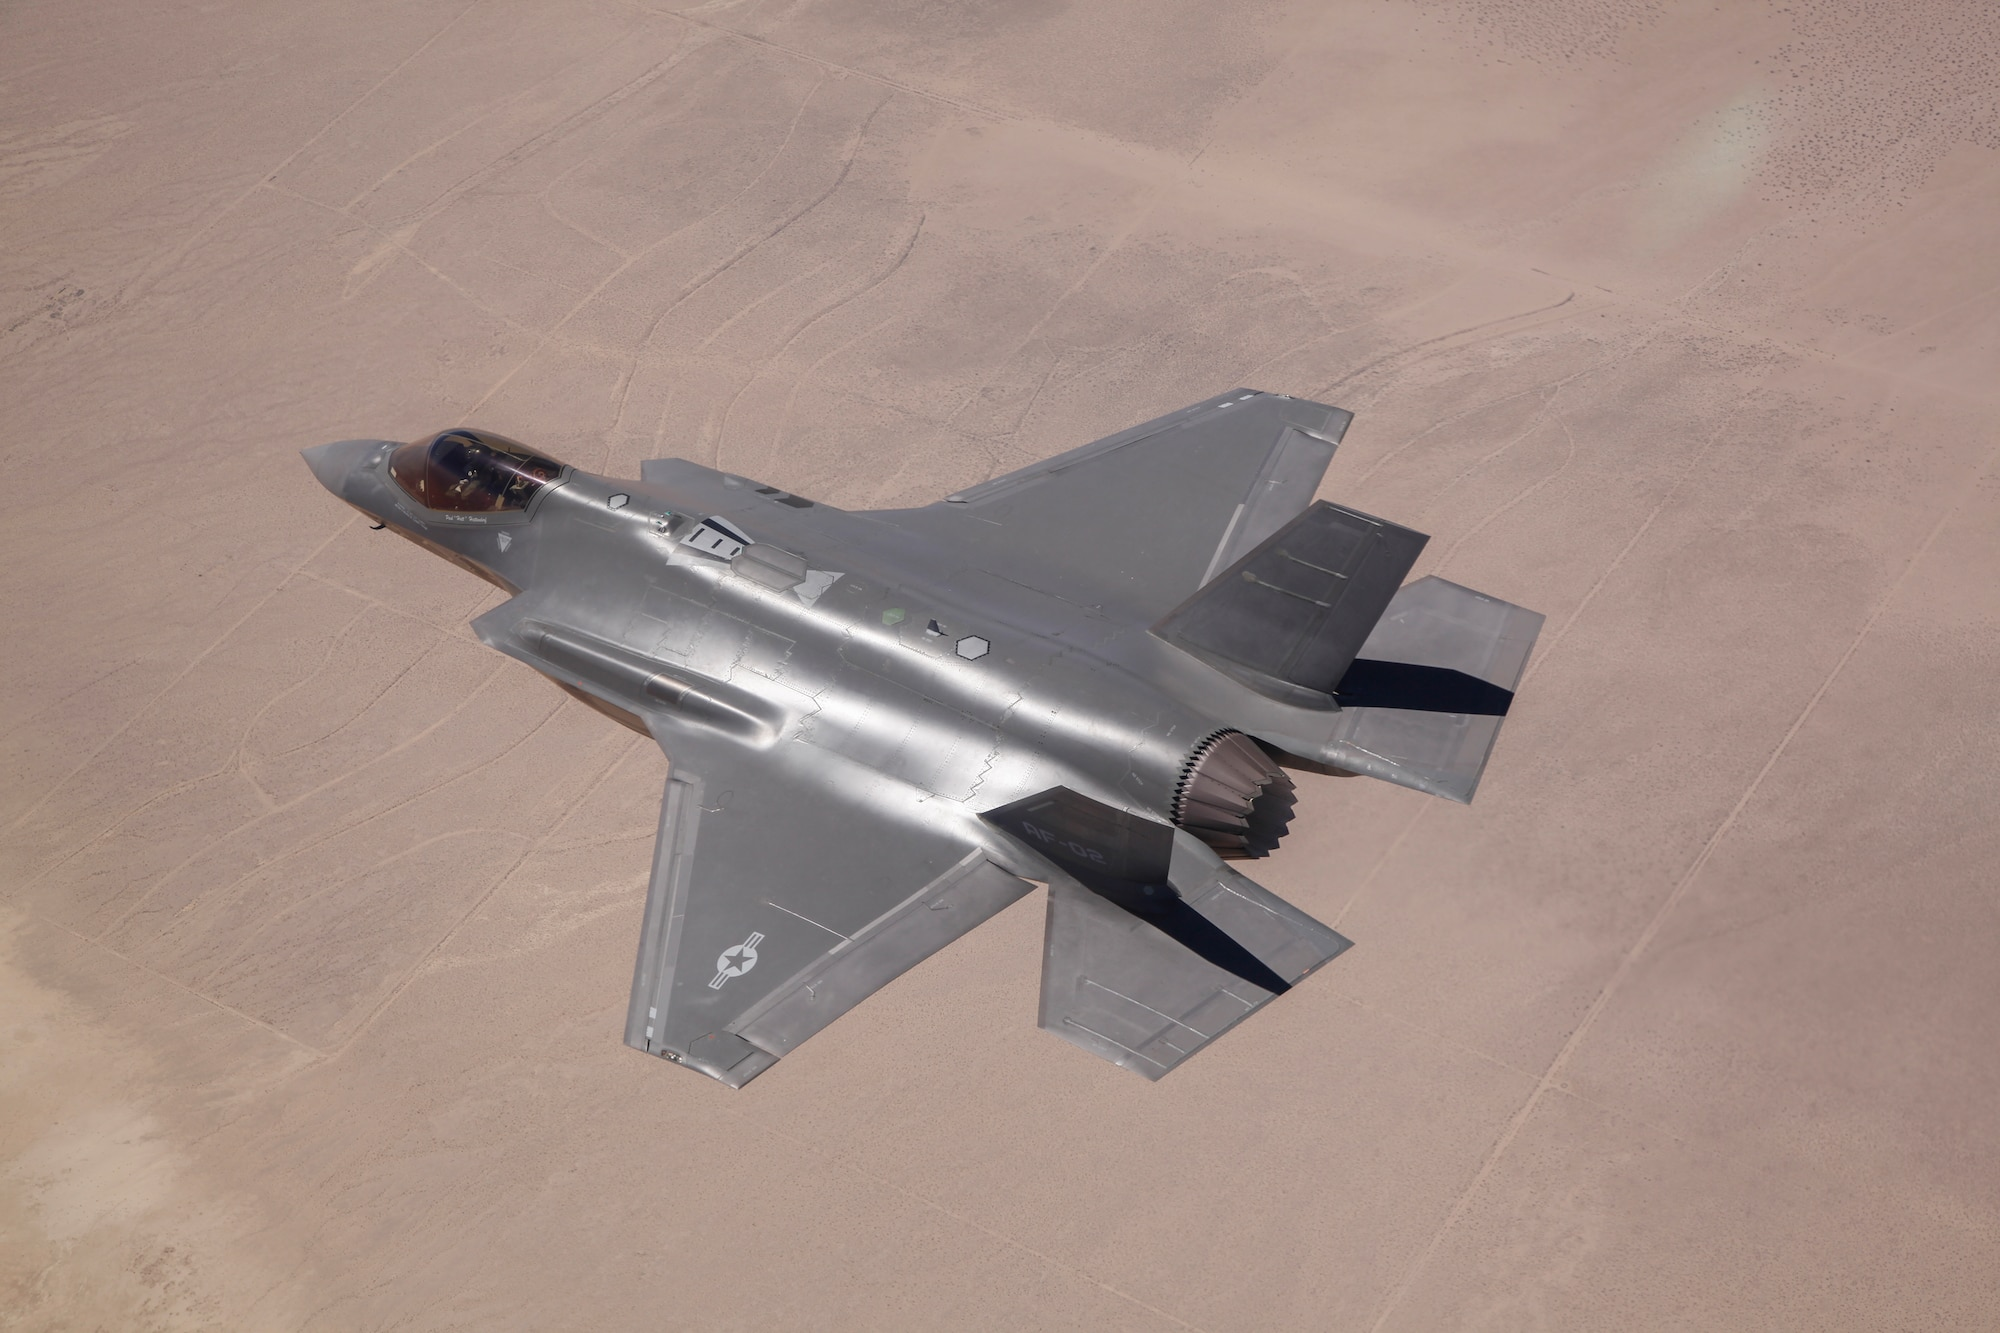 Paul Hattendorf, a Lockheed Martin test pilot, flies AF-2, the second production F-35 Lightning II for the Air Force, during an airframe loads envelope expansion mission June 11, 2014, over Edwards Air Force Base, Calif. During the test mission, AF-2 became the first F-35 to reach 1,000 flight hours. (Lockheed Martin photo/Tom Reynolds)